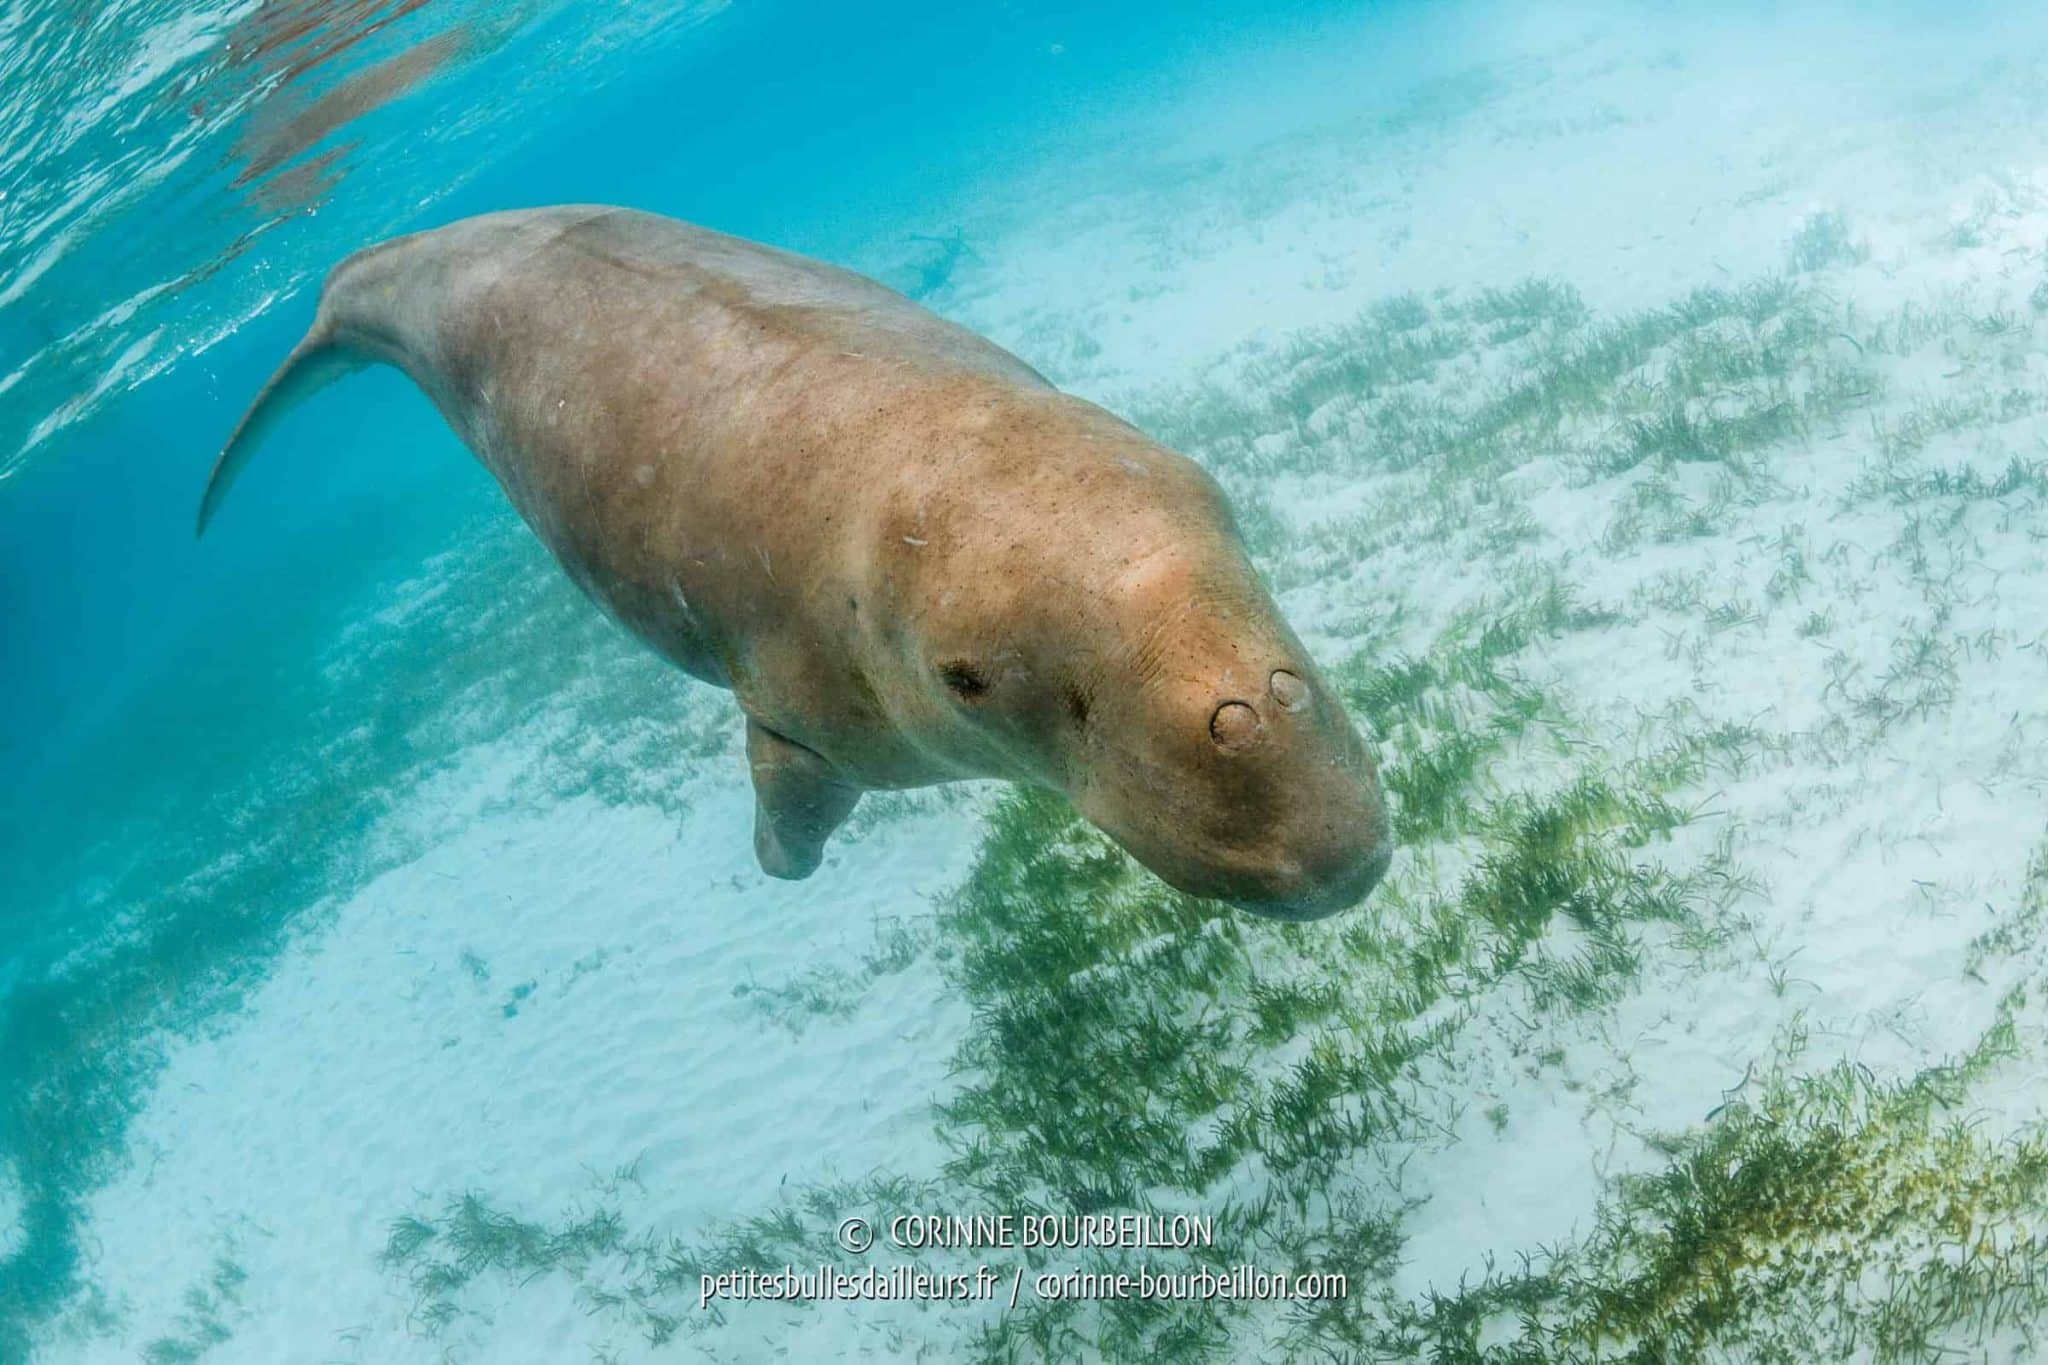 The dugong swims in shallow water, its main activity being to feed on the meadows of the bay. (Alor, Indonesia, July 2018)